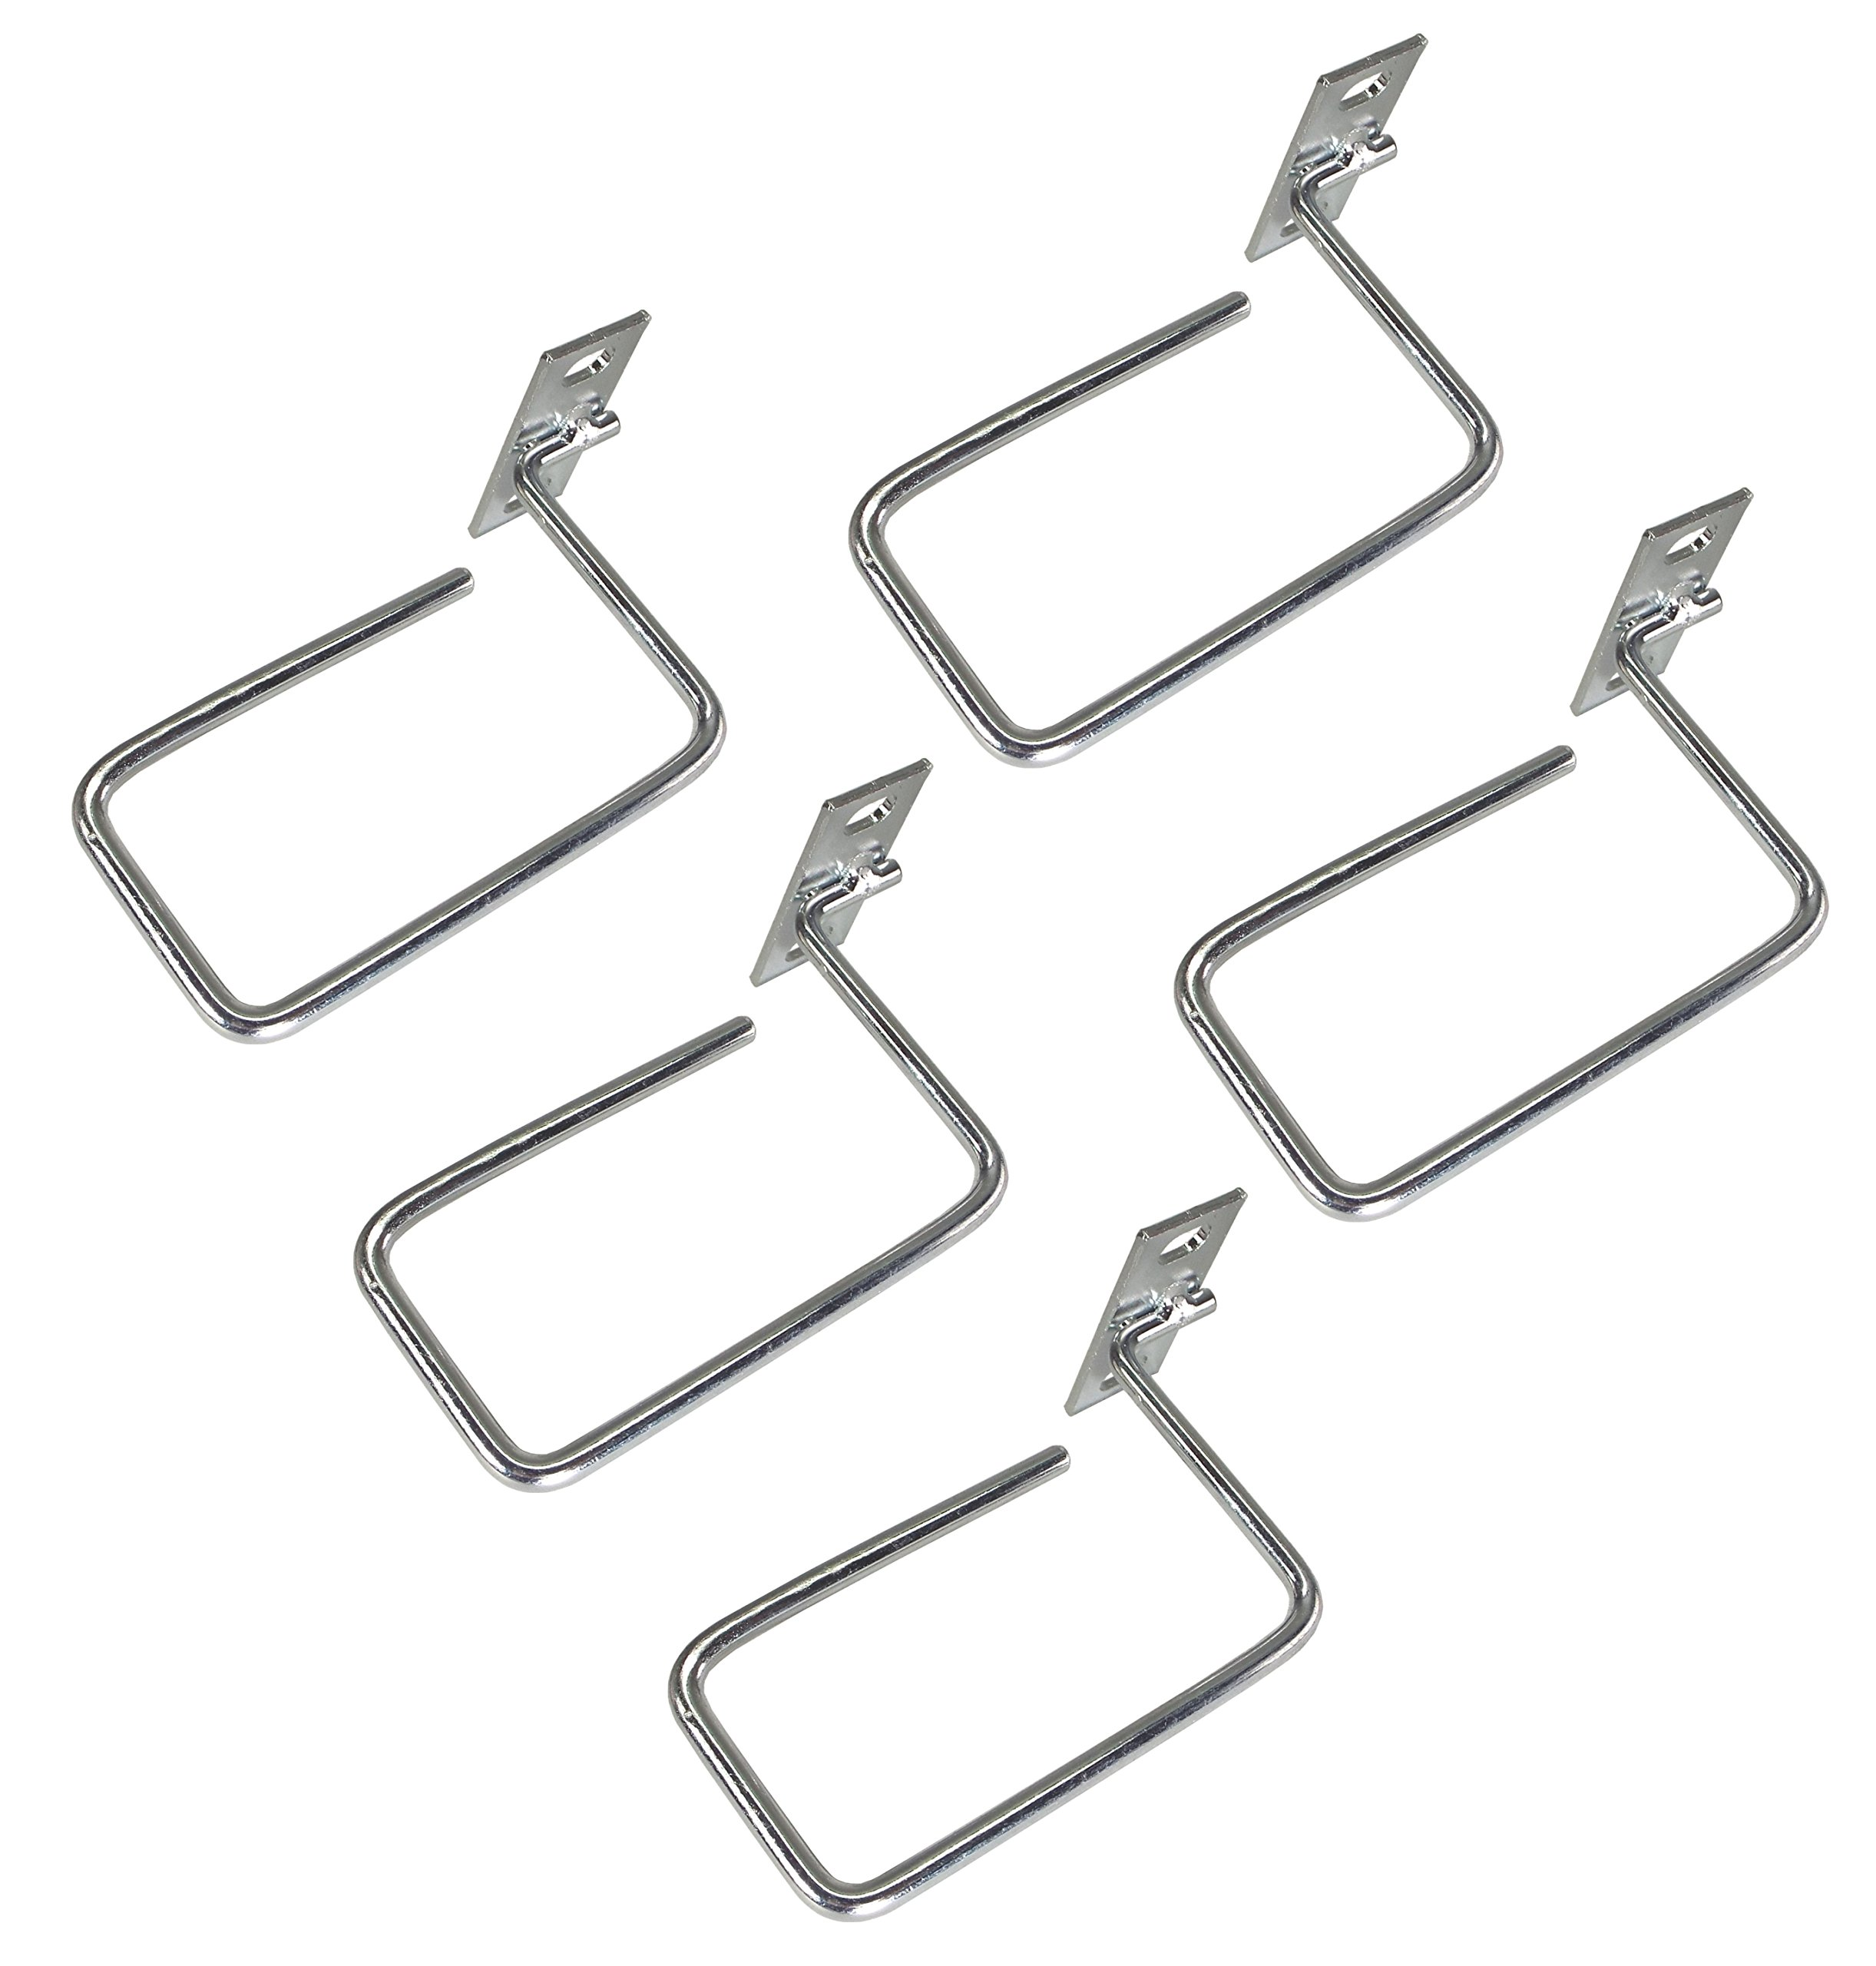 CNAweb 1U Vertical Server Rack Cable Management Minder D-Ring Hook Cable Organizer - Pack of 5 by CNAWEB